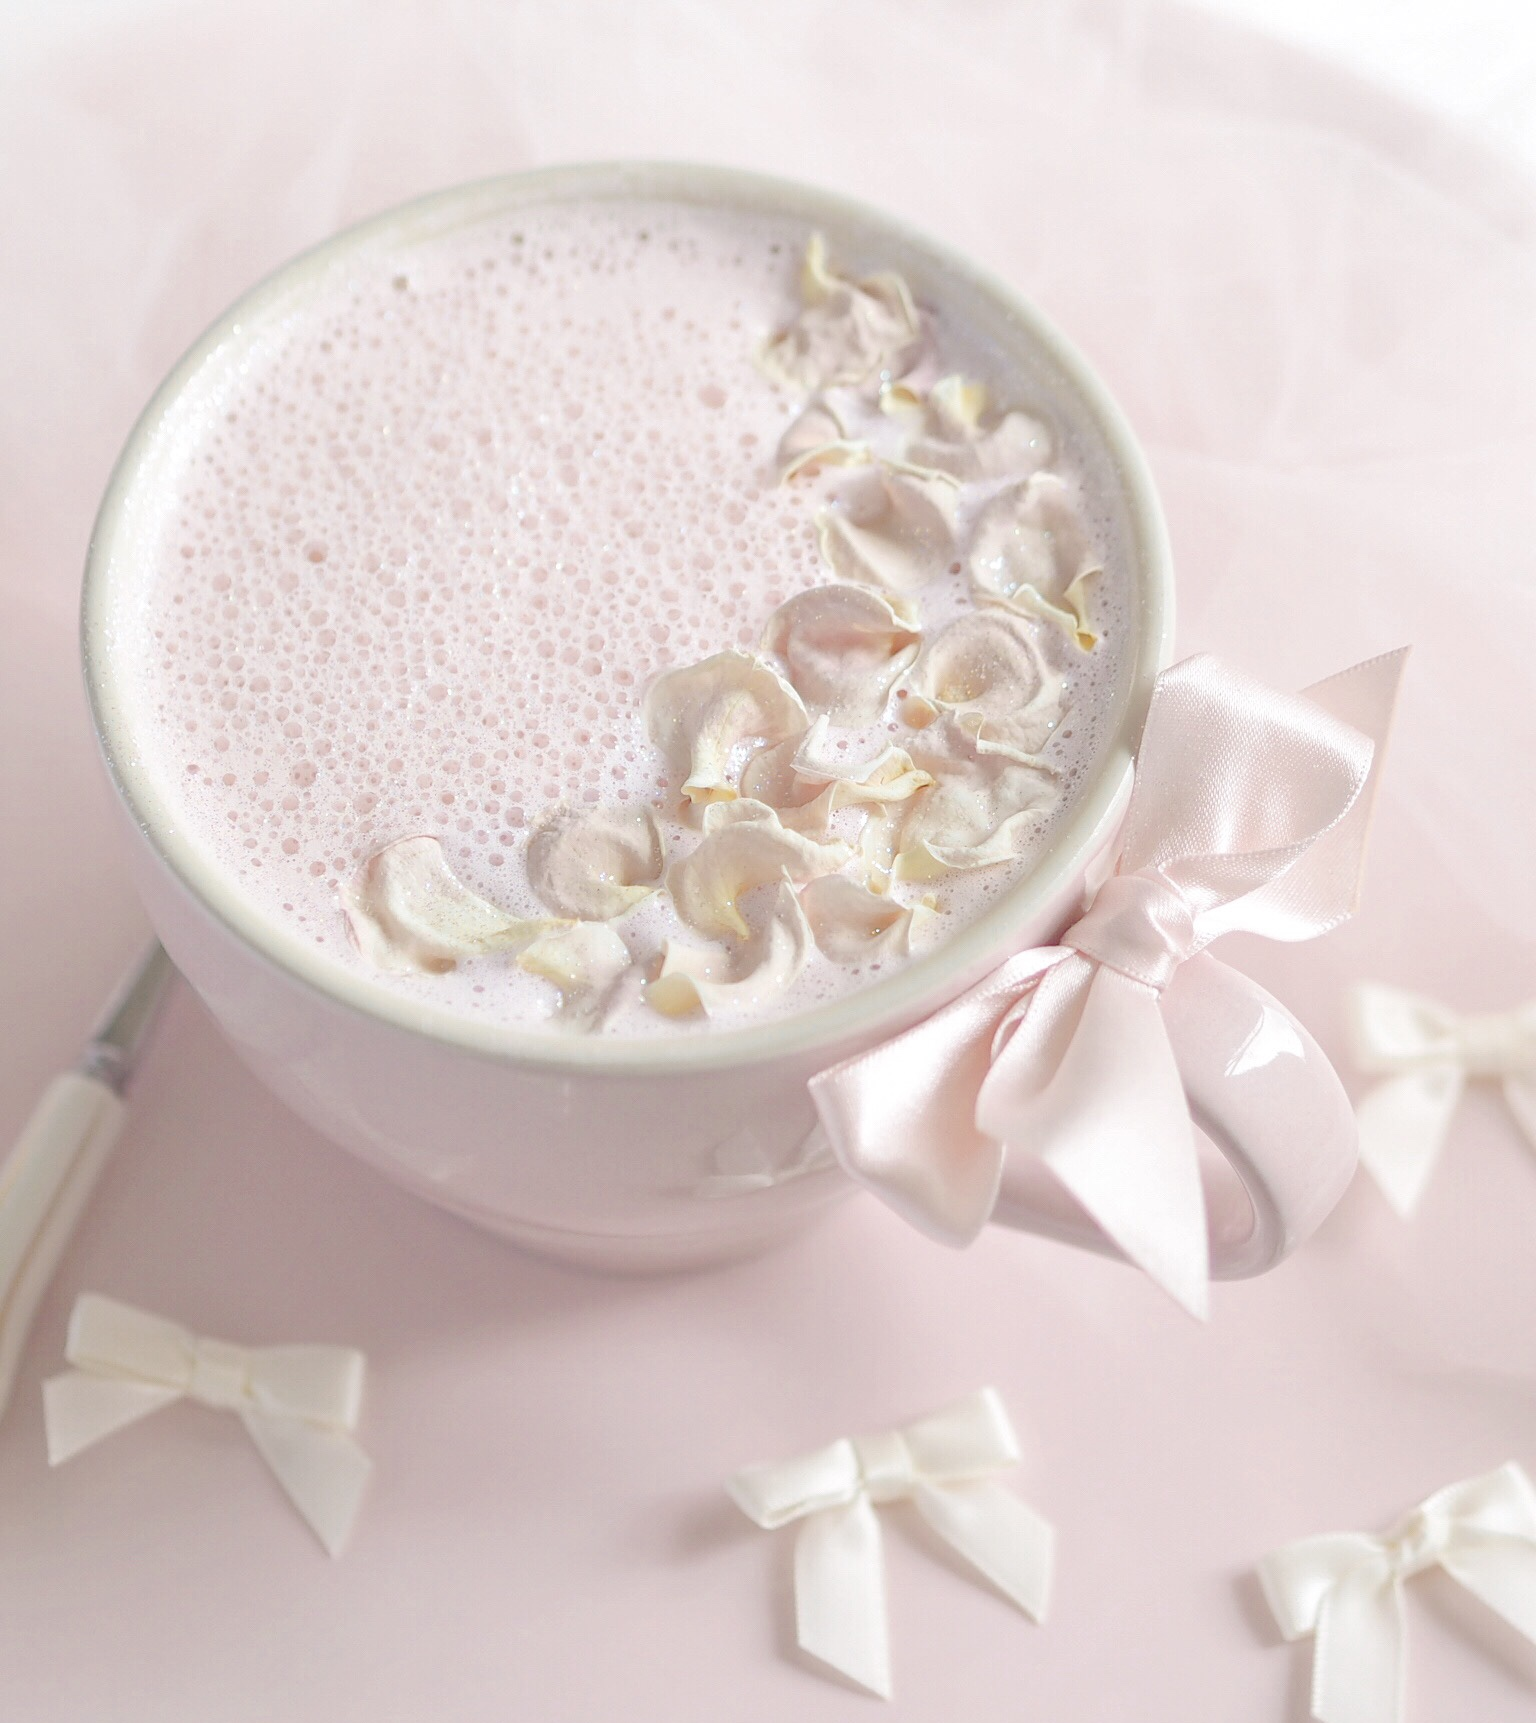 Pink Rose & Vanilla Moon Milk Recipe